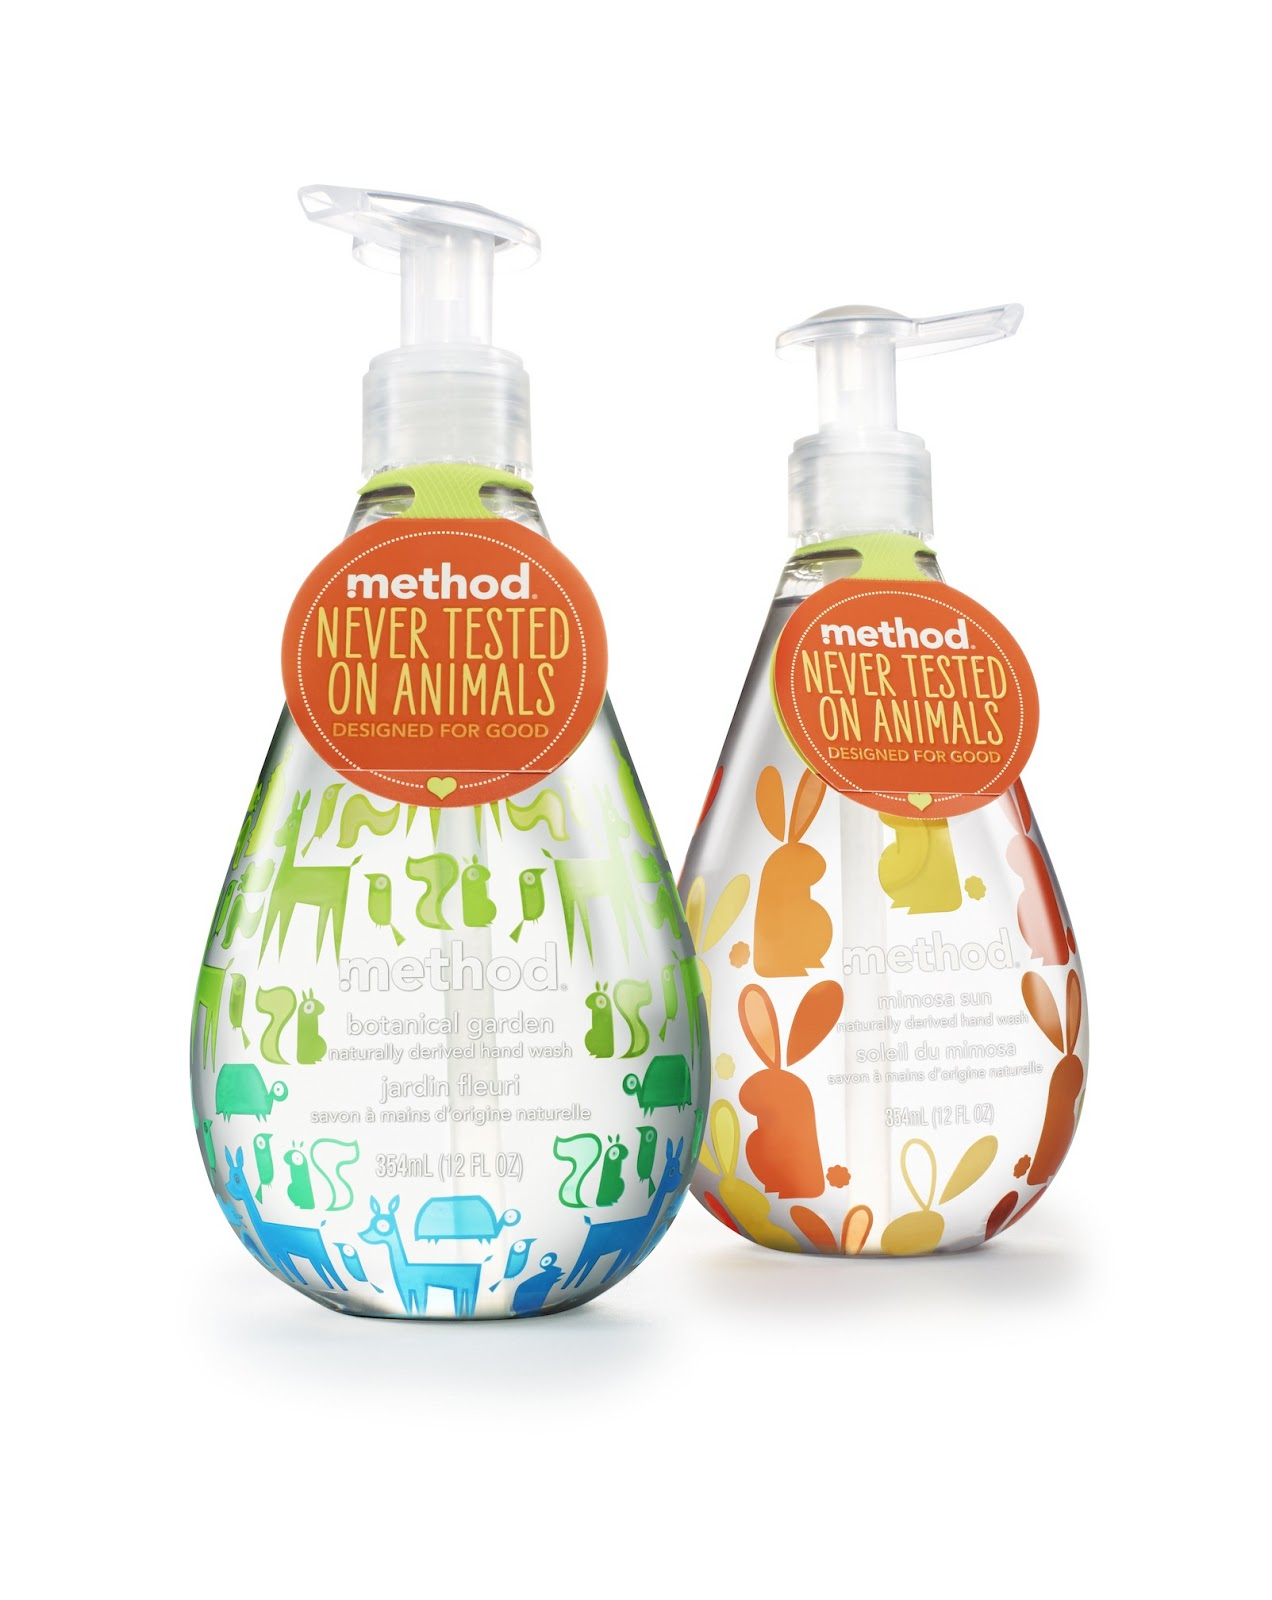 method designed for good soaps   much adoo